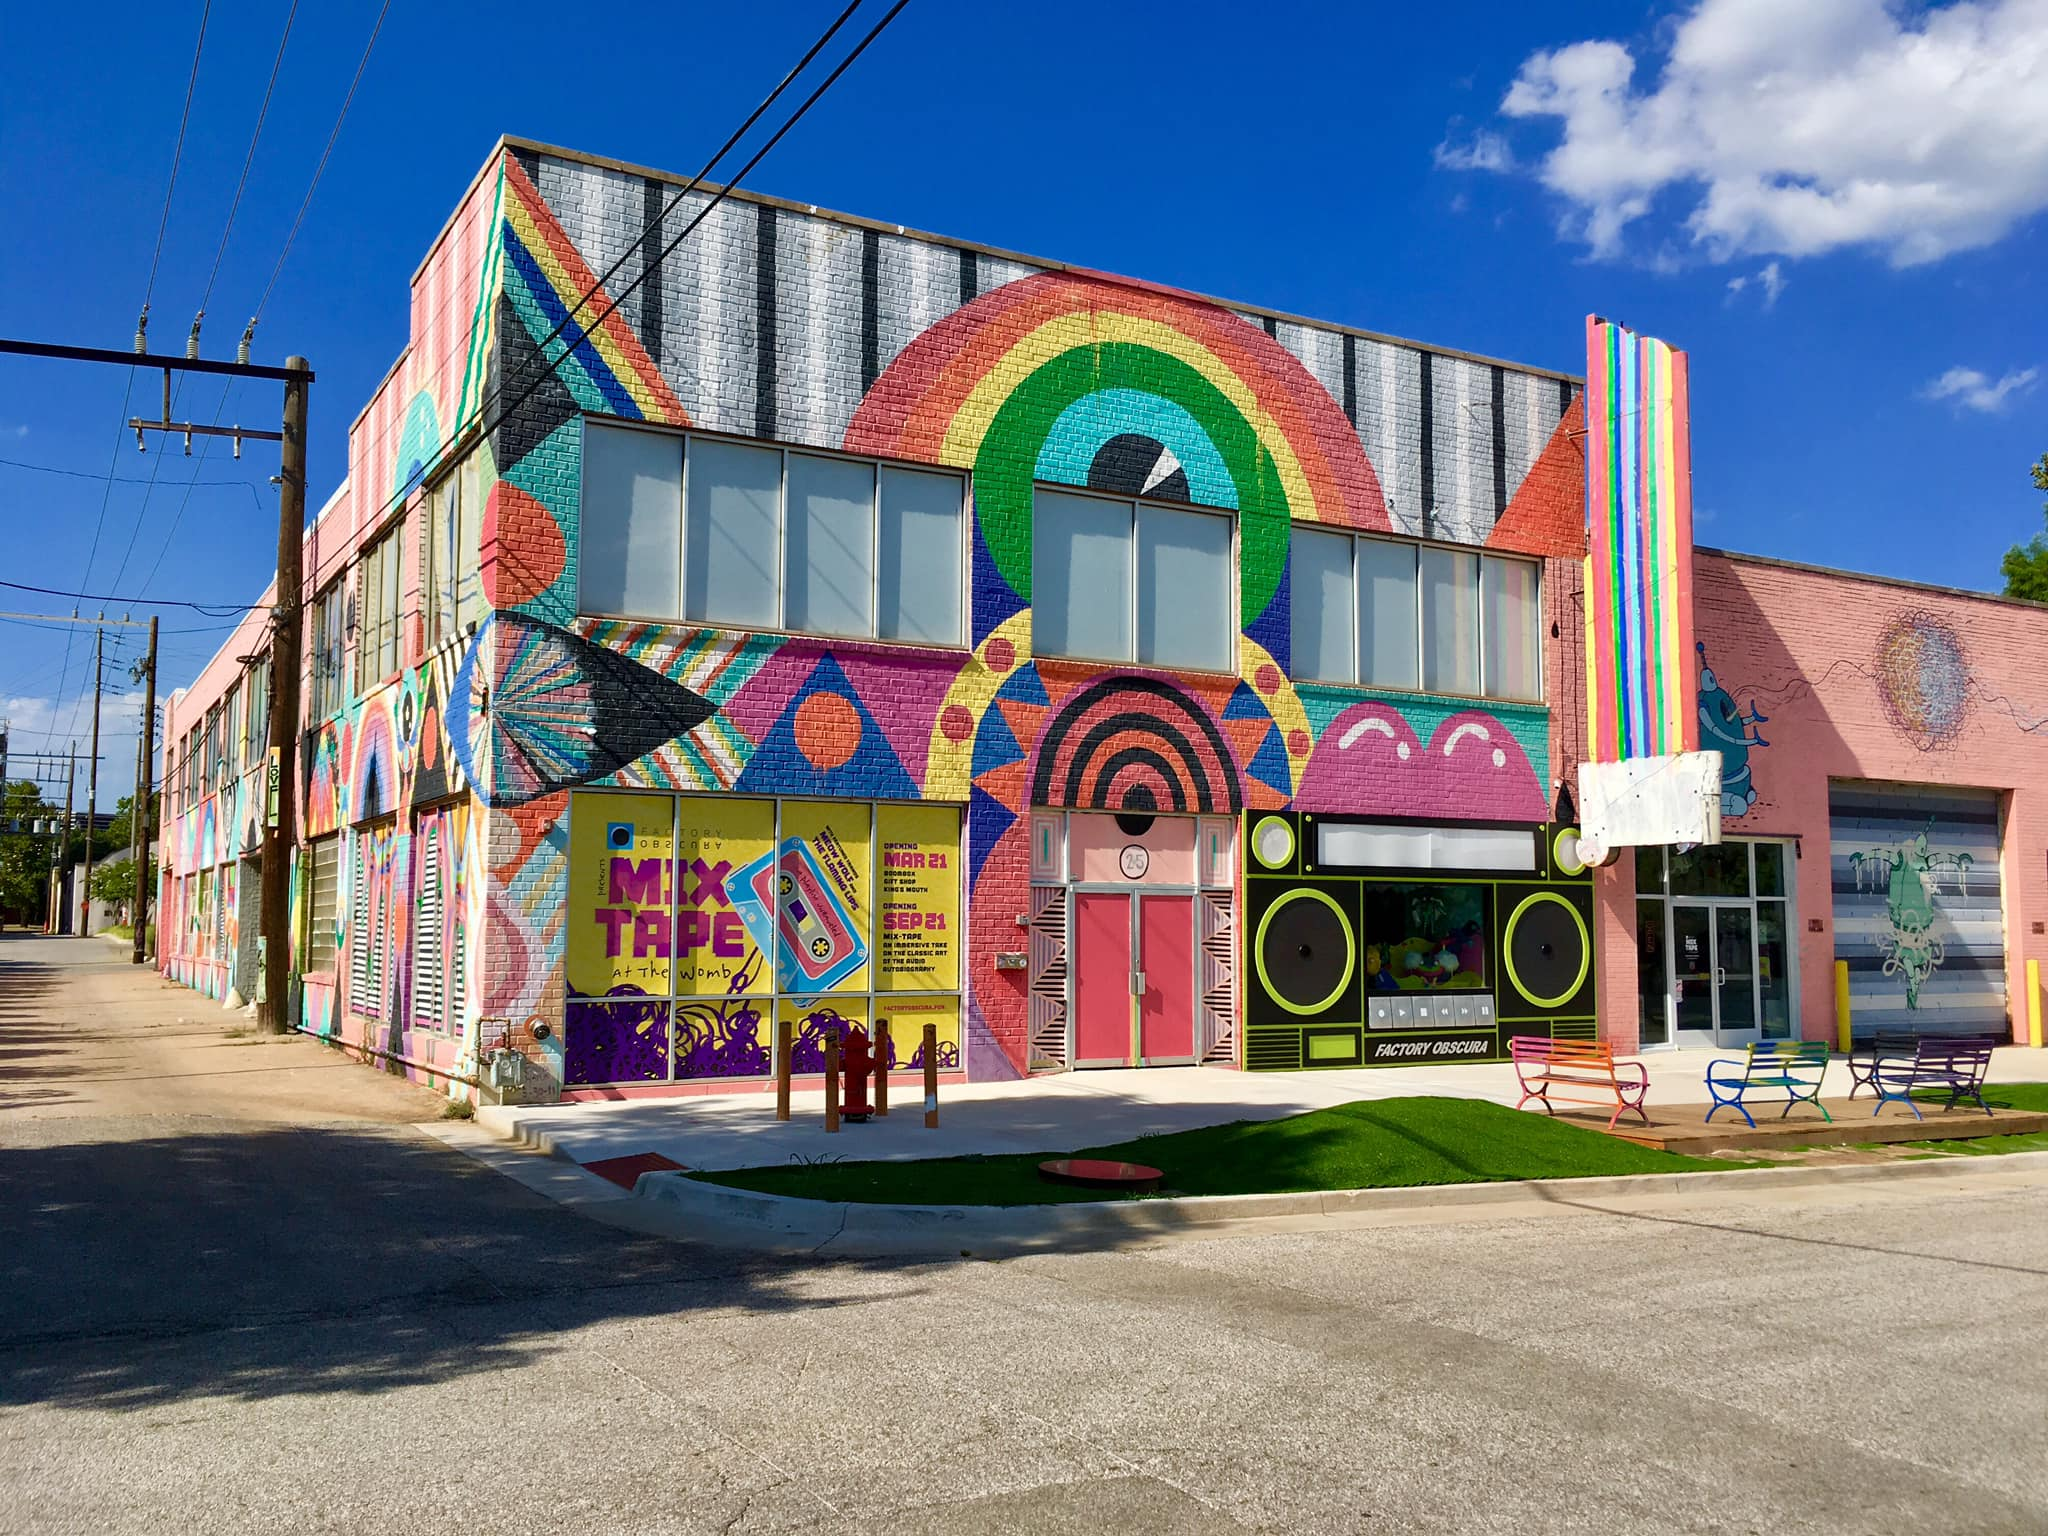 Former headquarters of The Flaming Lips in Oklahoma City. Now occupied by Factory Obscura for the MIX TAPE installation.